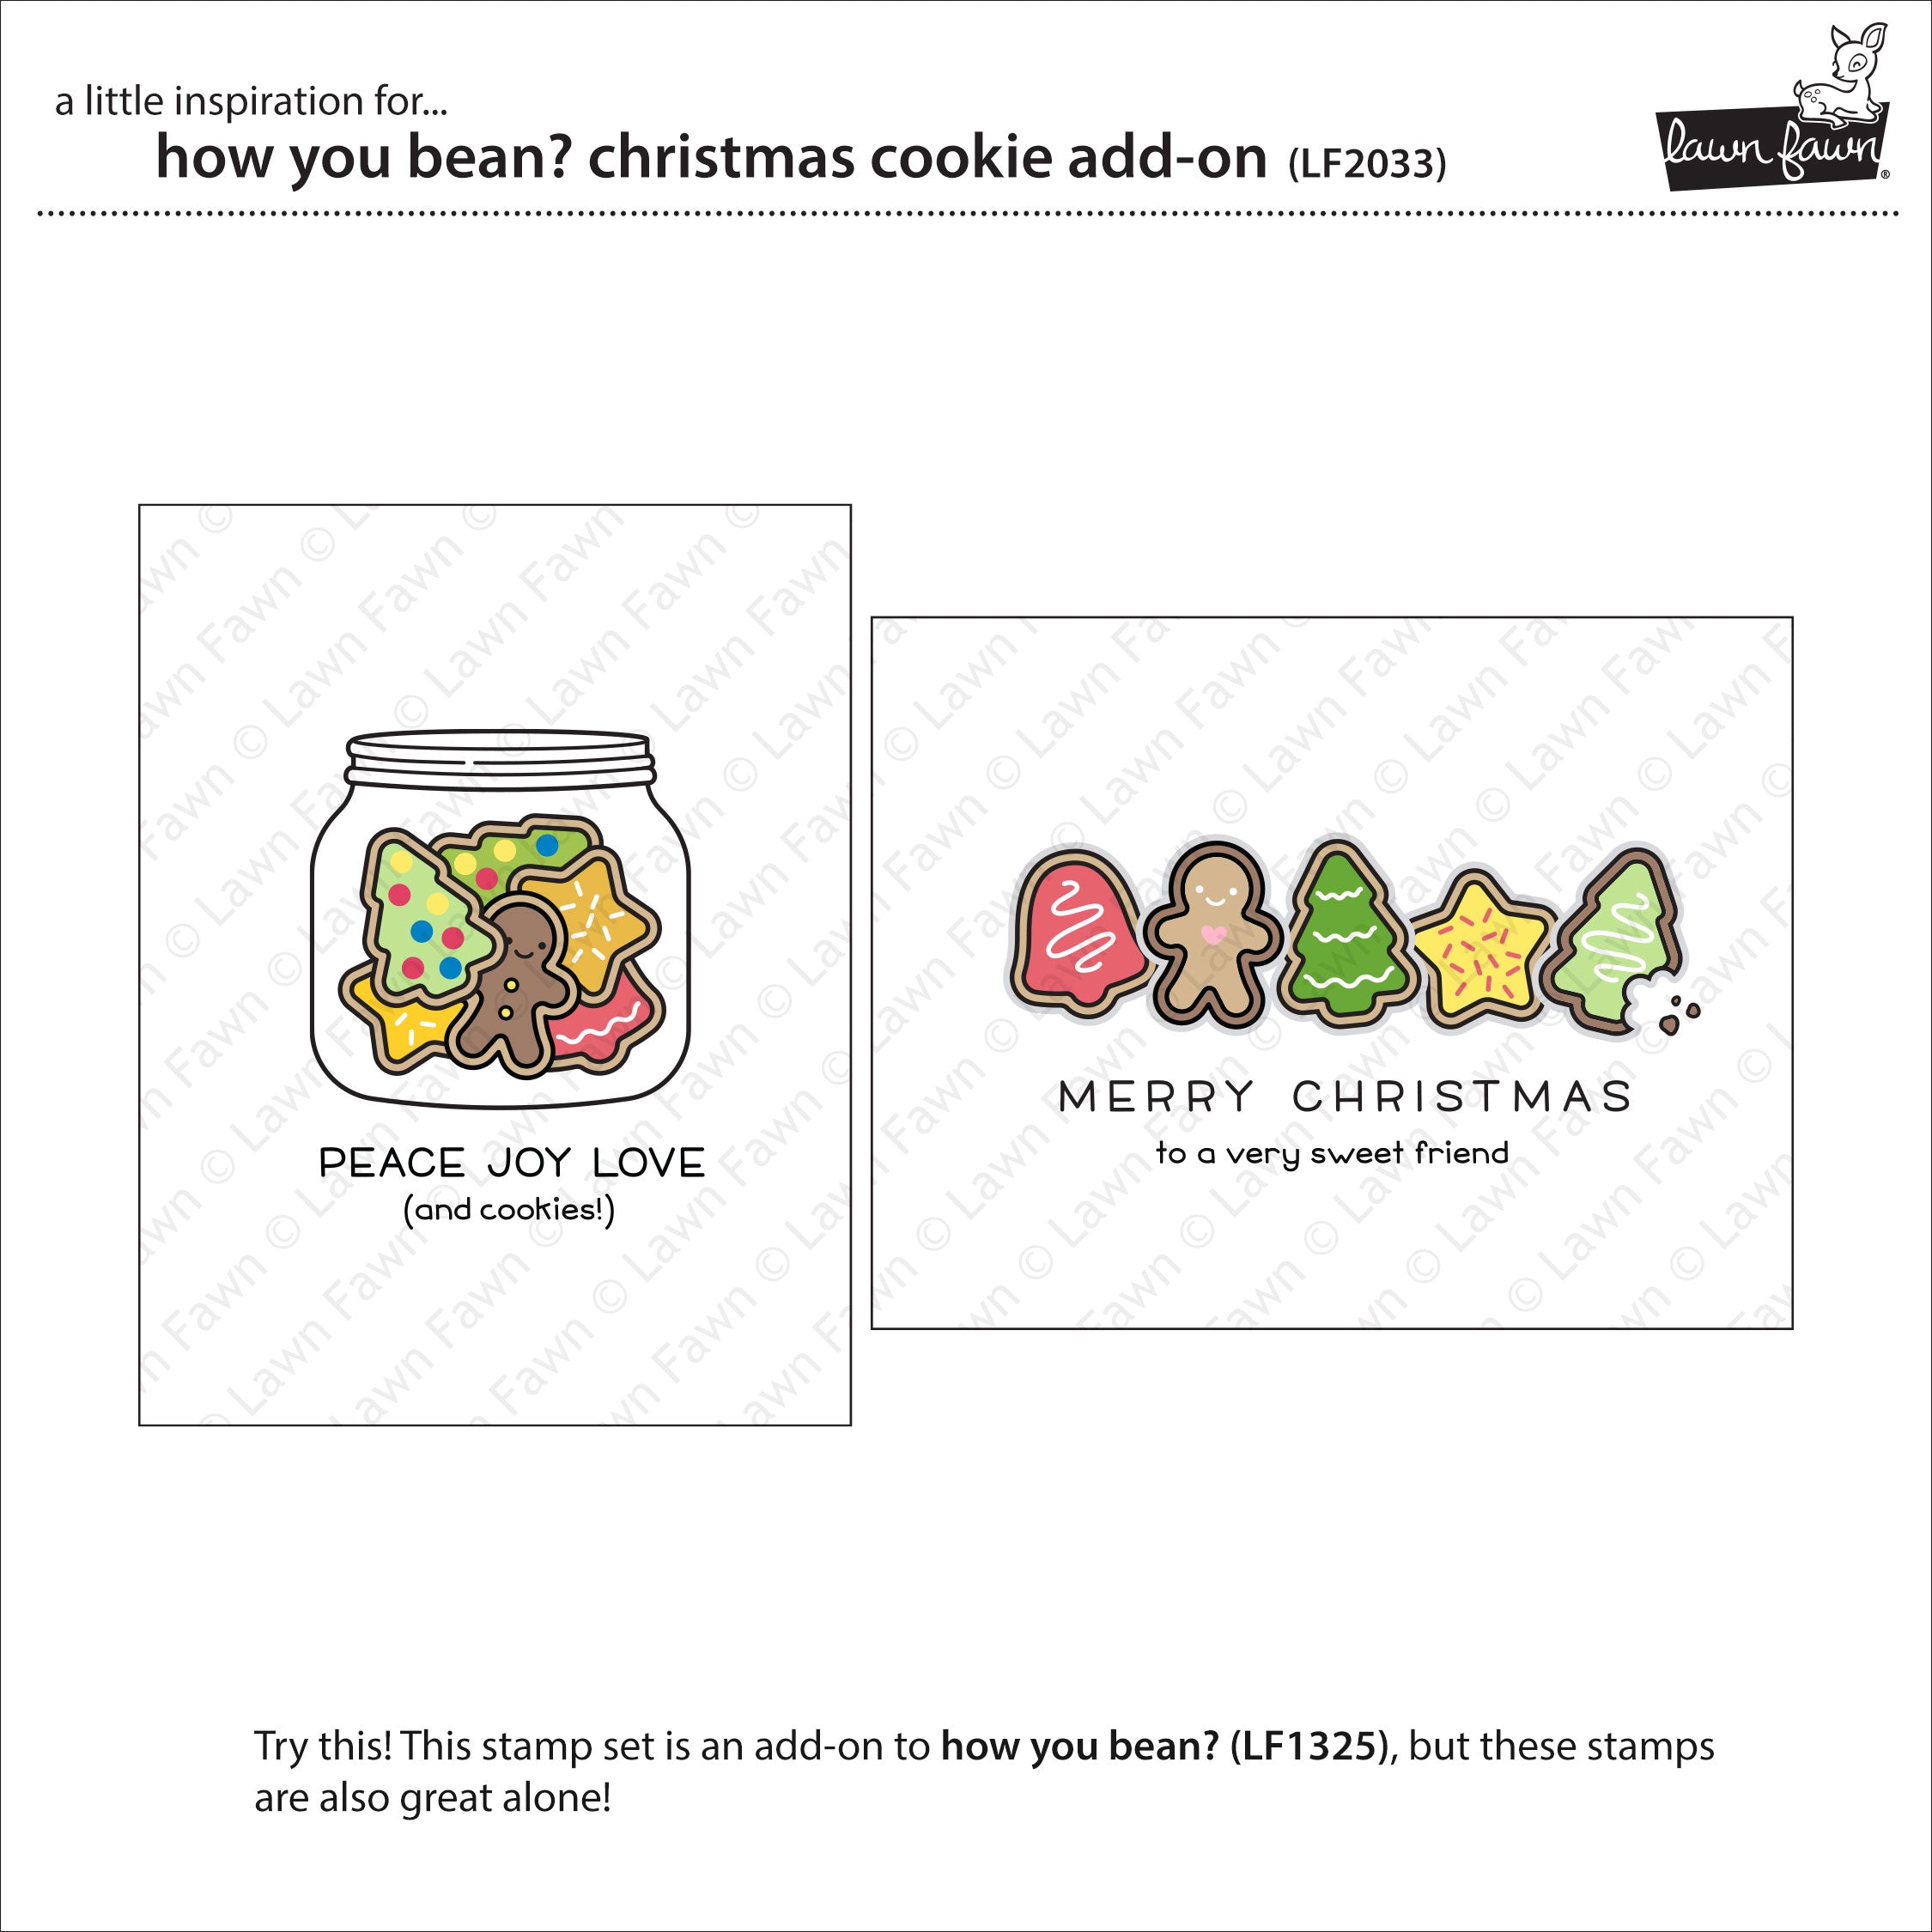 how you bean? christmas cookie add-on